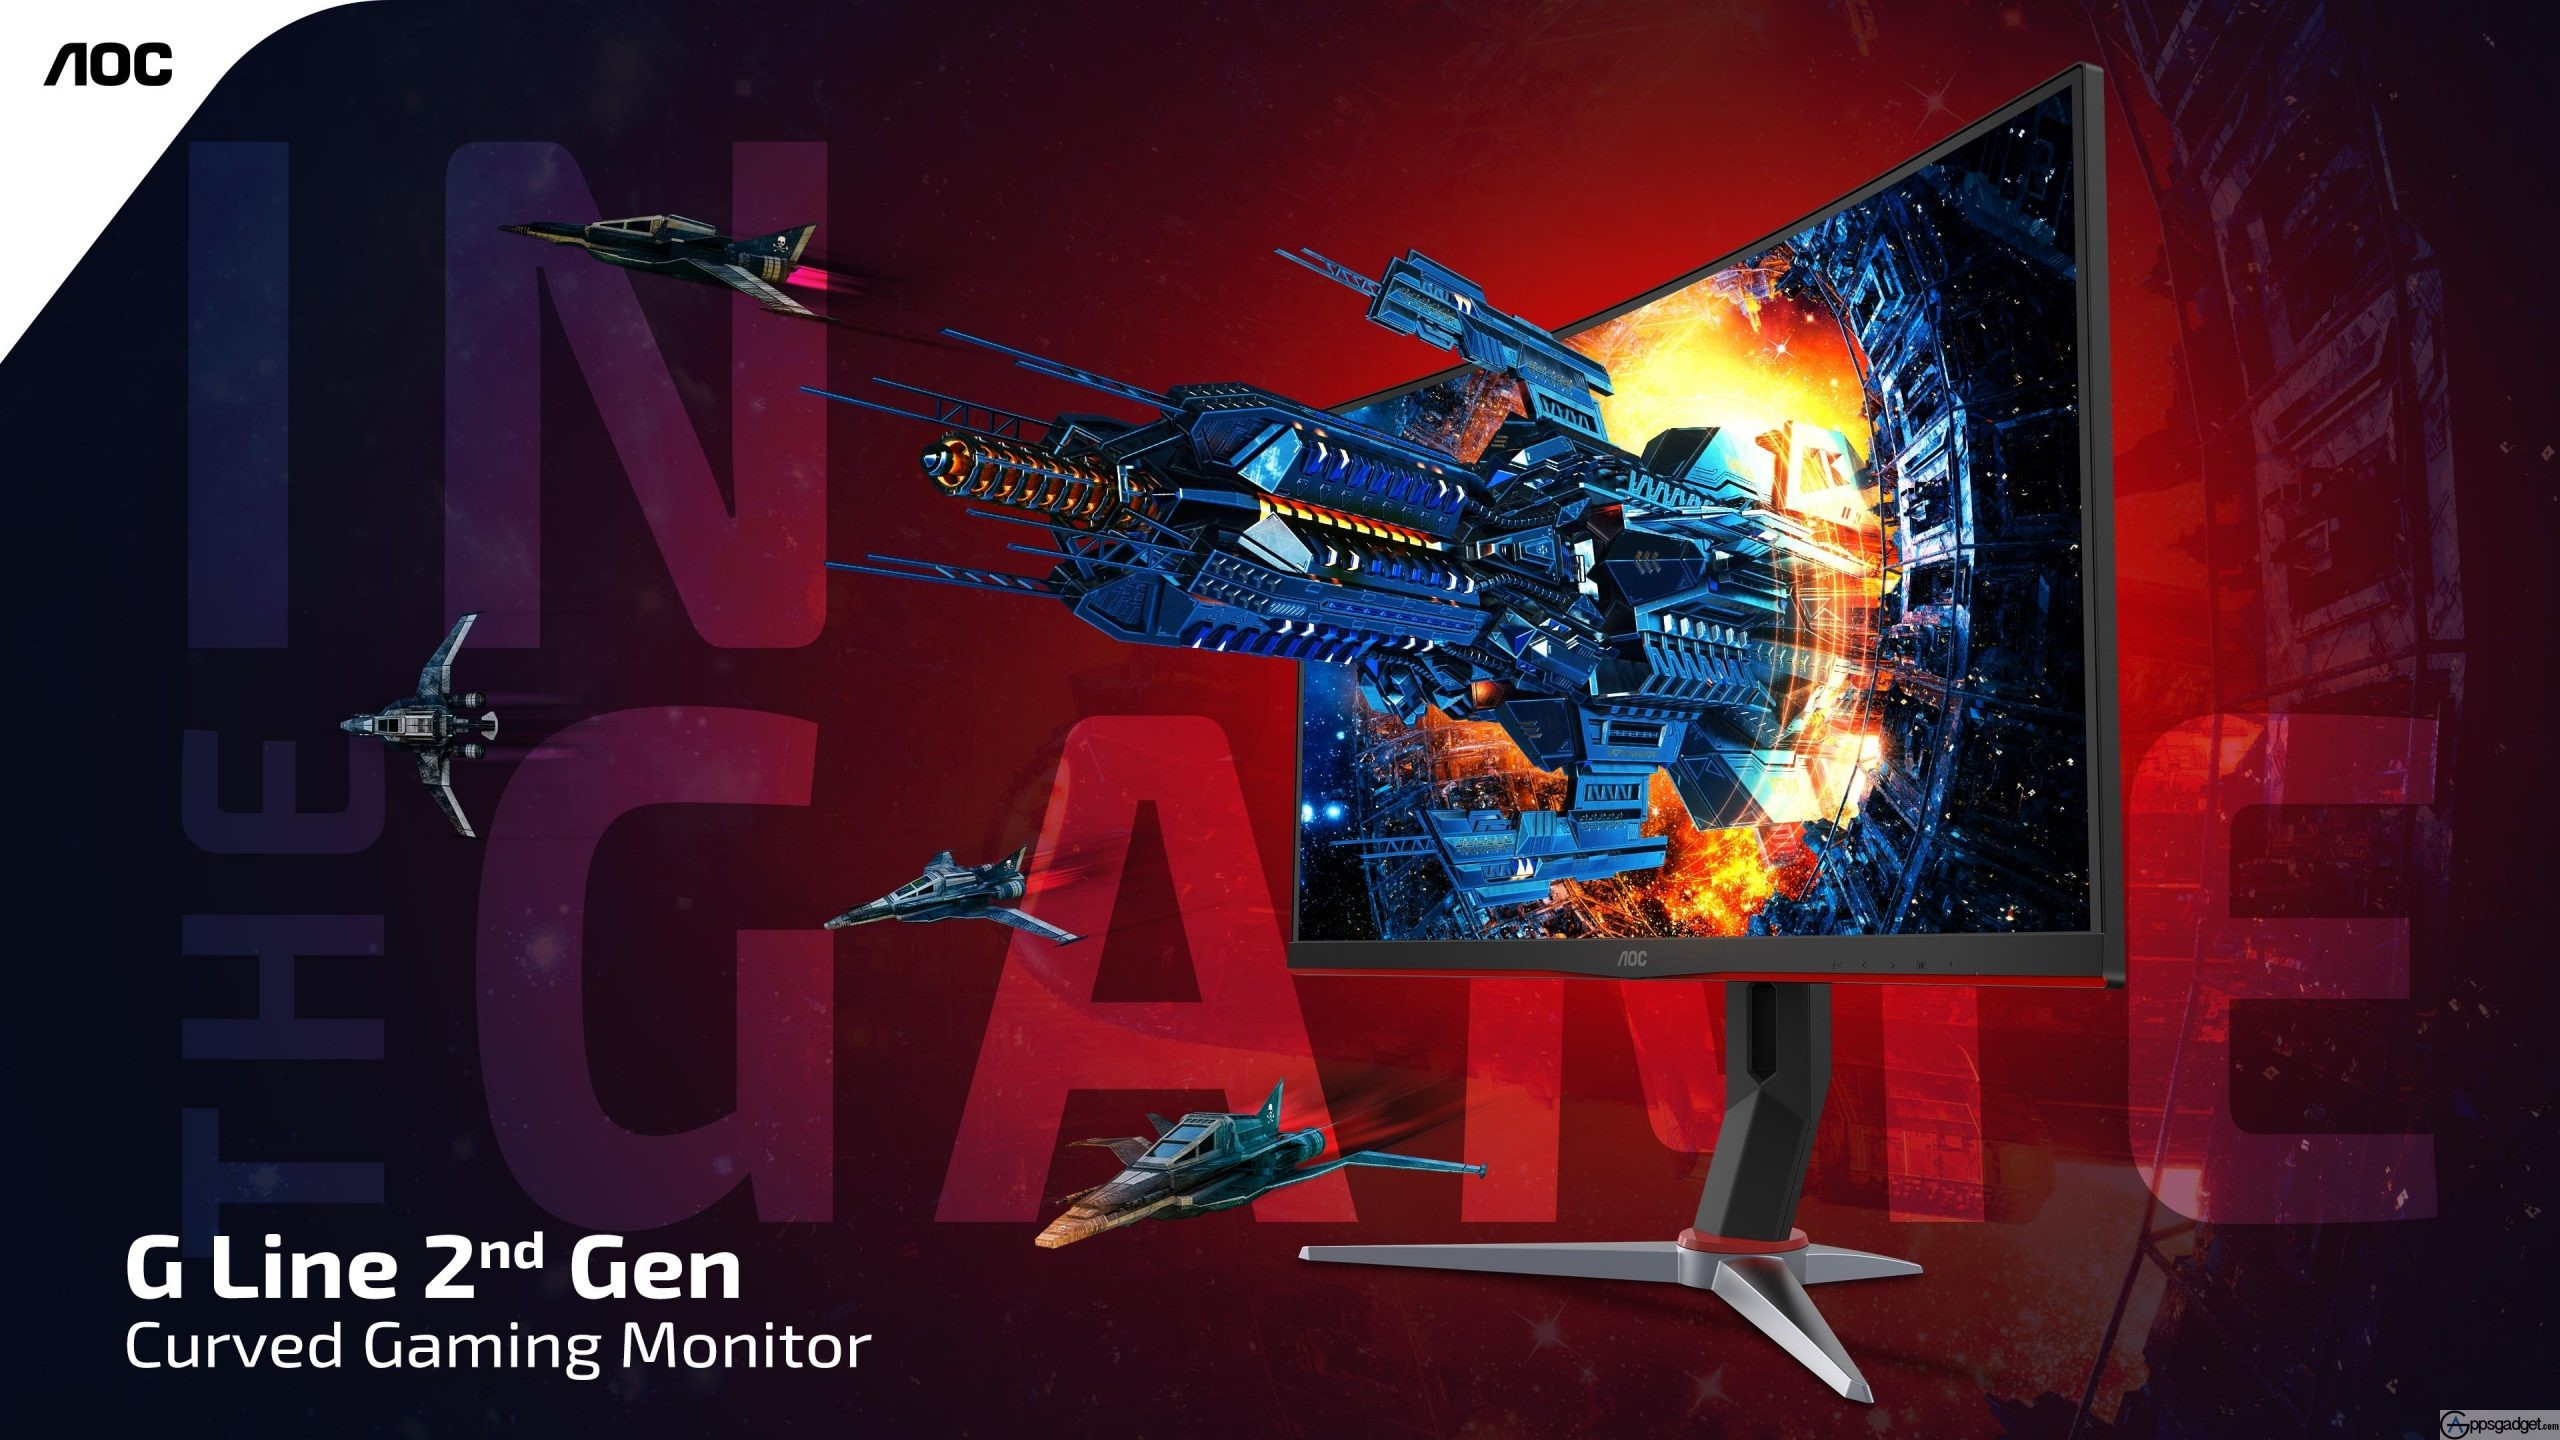 AOC Gaming G2 Series Monitors Perfect Monitor For Gamers and Homeschool